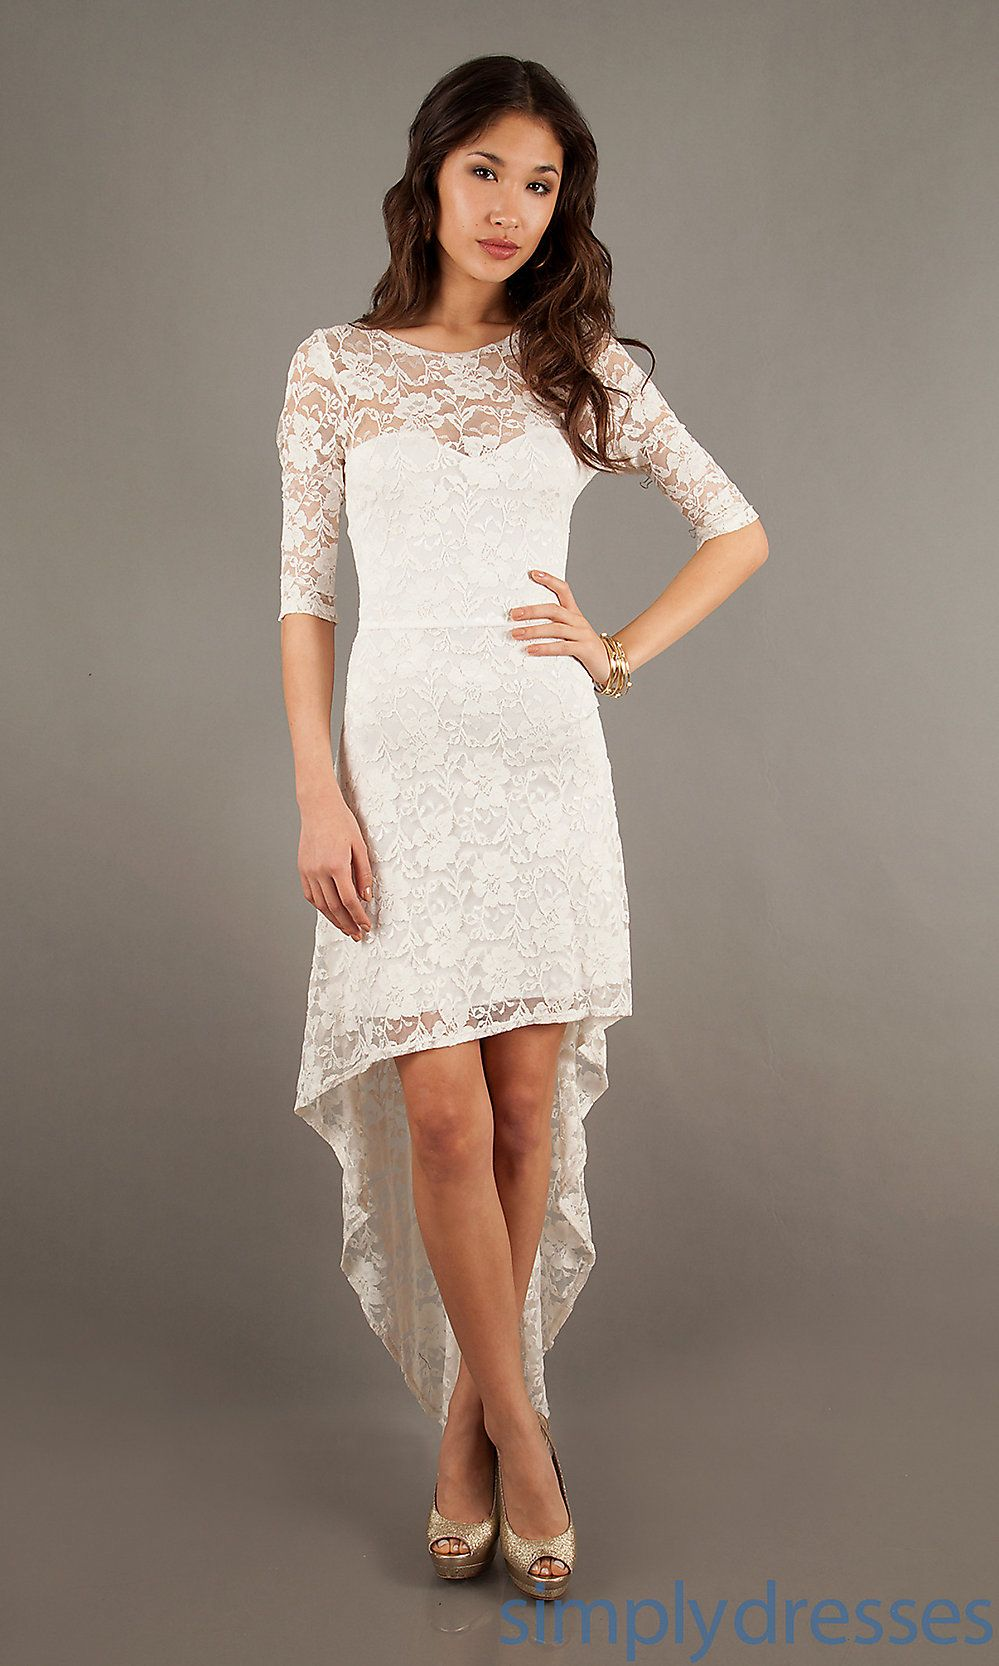 Rehearsal dinner dress. Yes please! | Weddings - just because ...